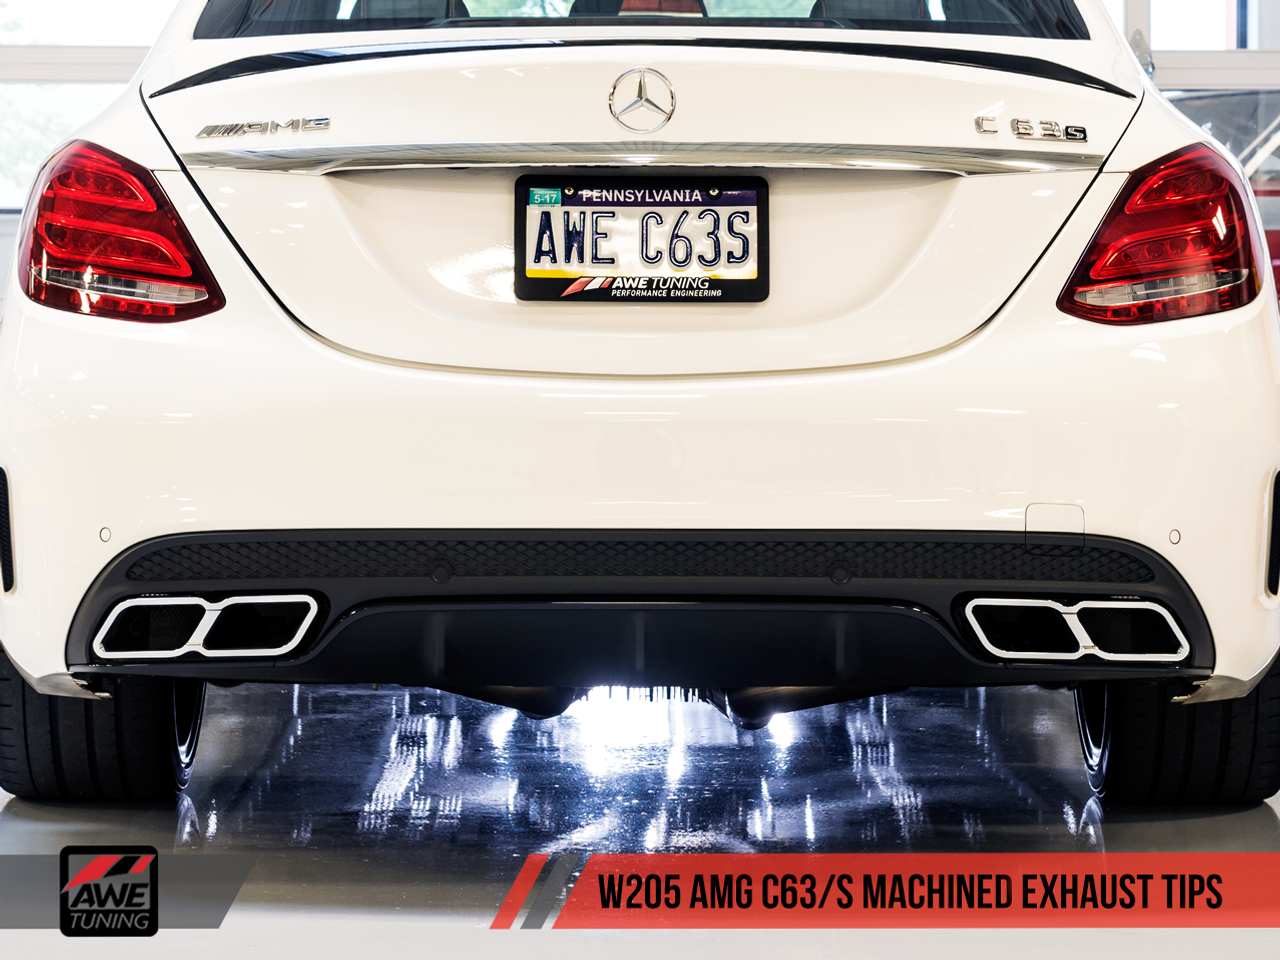 AWE Tuning Mercedes-Benz W205 AMG C63 Machined Exhaust Tailpipes